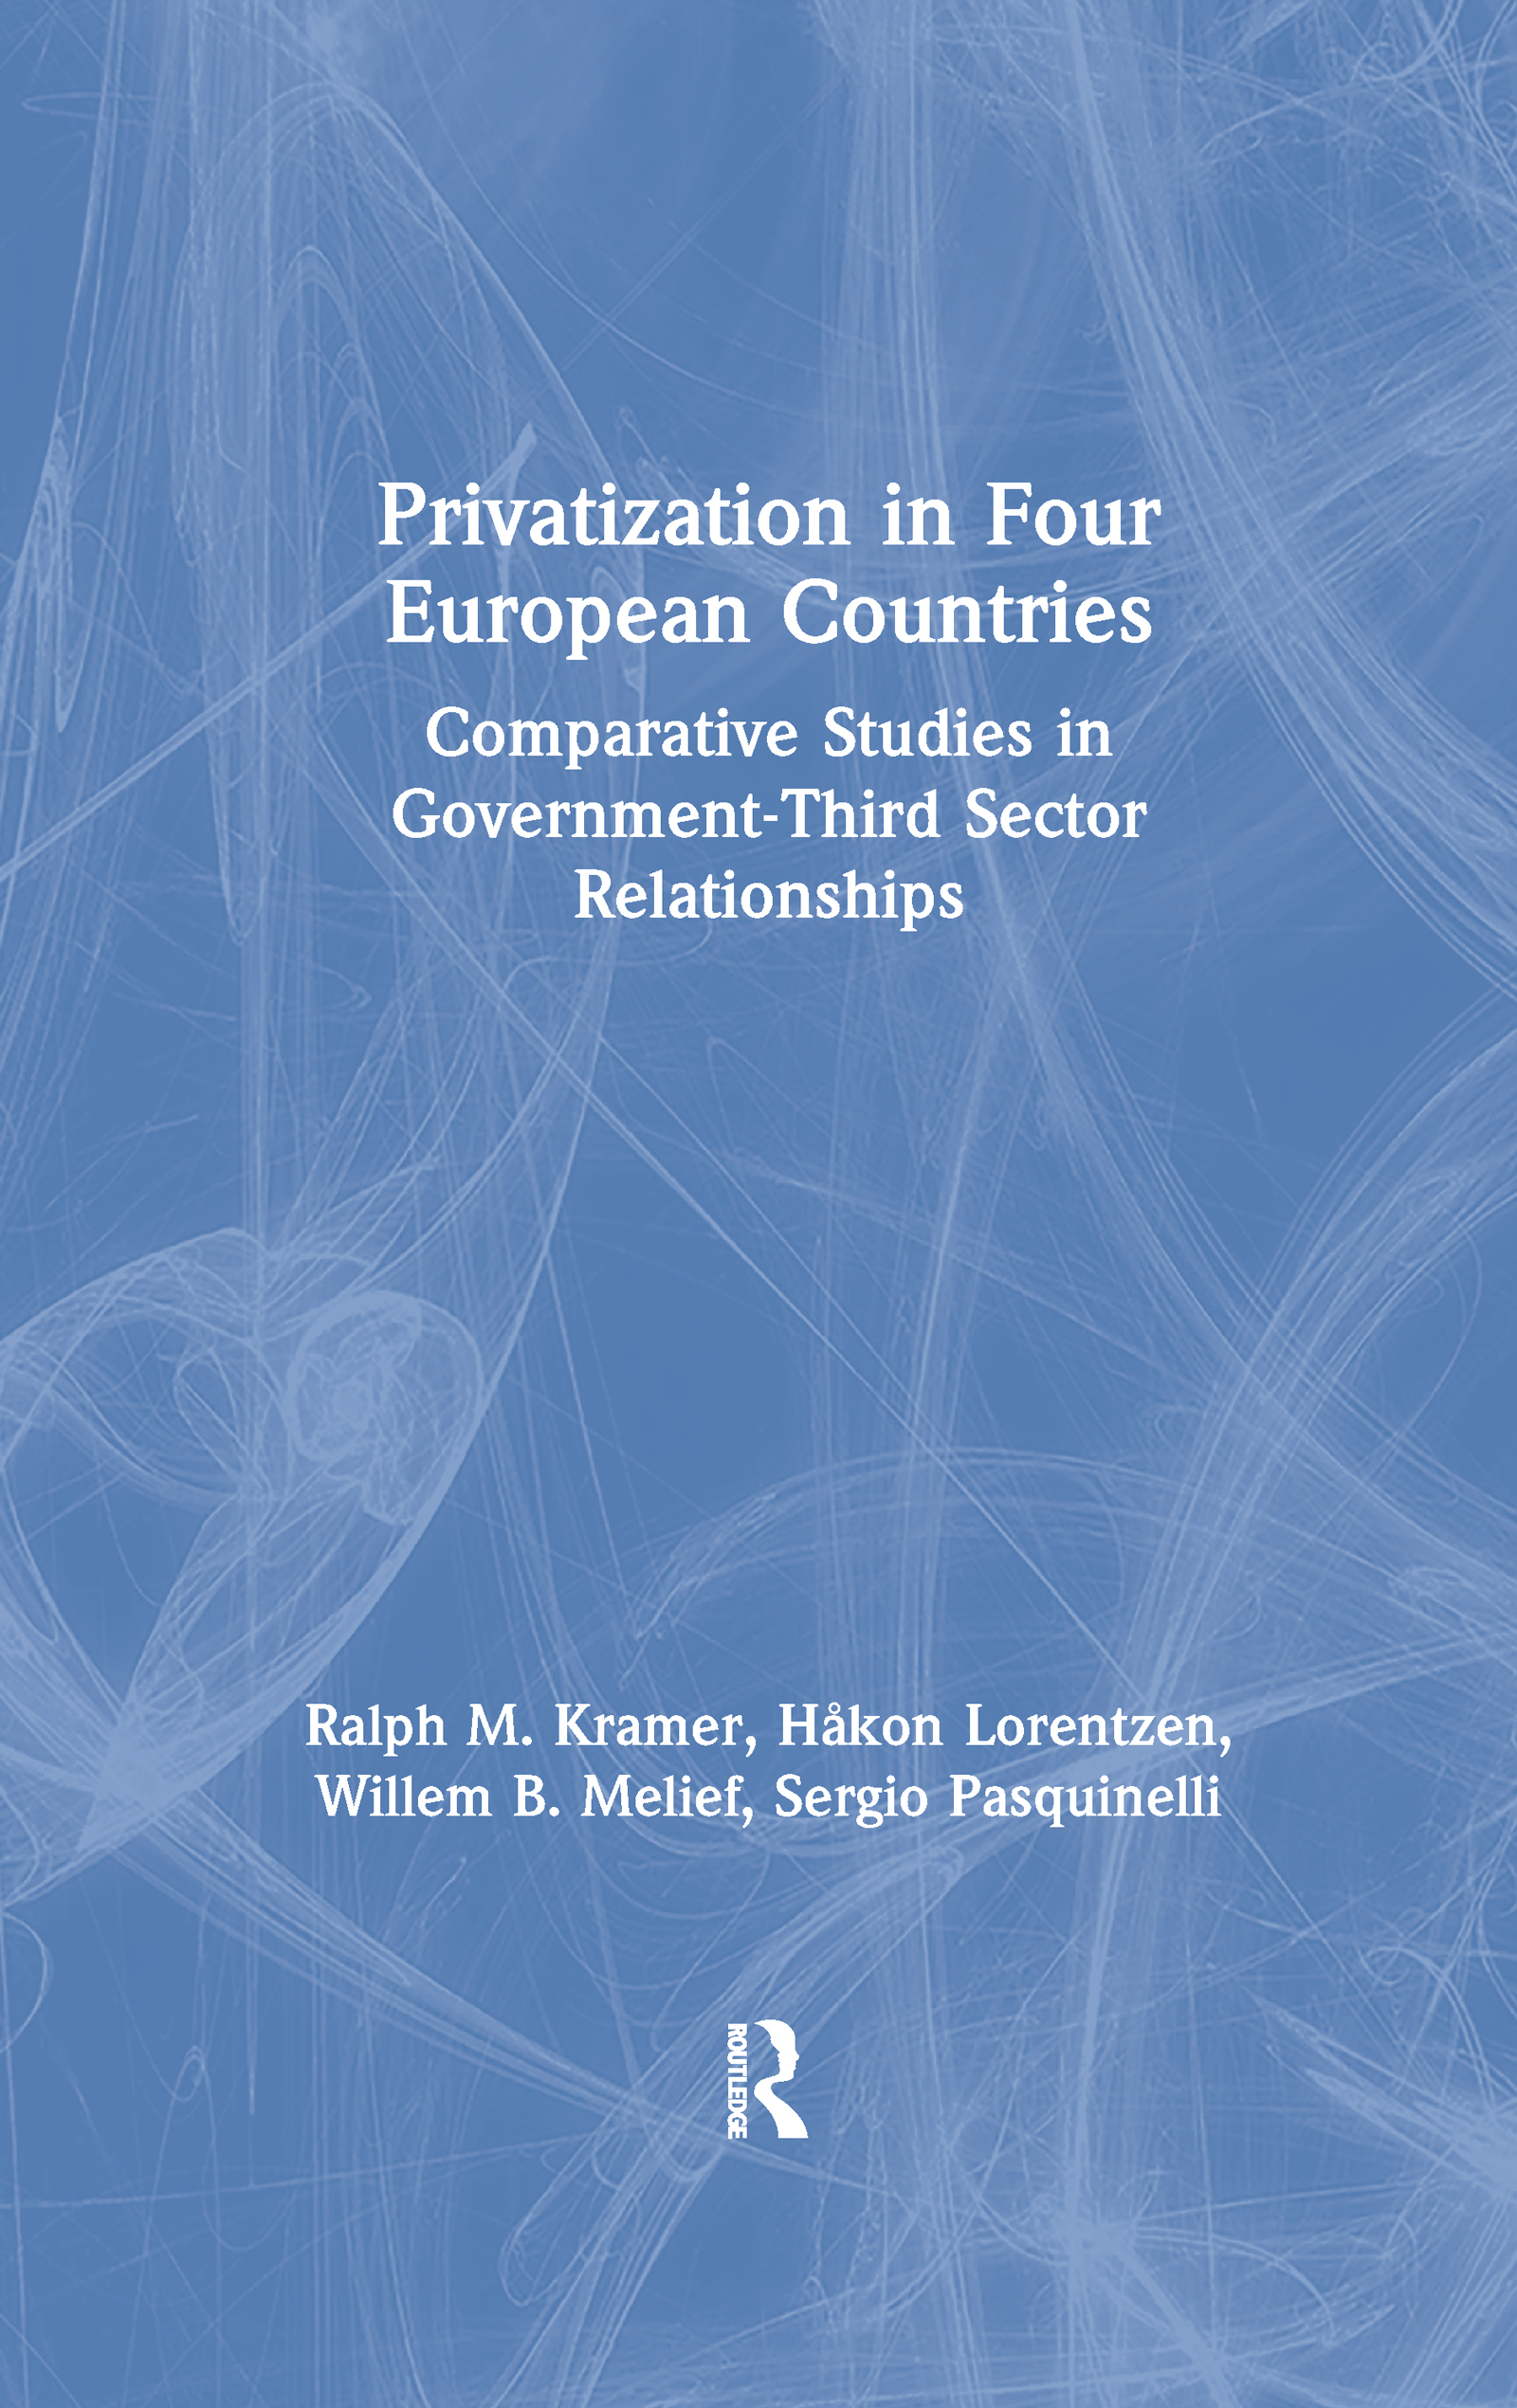 Privatization in Four European Countries: Comparative Studies in Government - Third Sector Relationships: Comparative Studies in Government - Third Sector Relationships, 1st Edition (Hardback) book cover